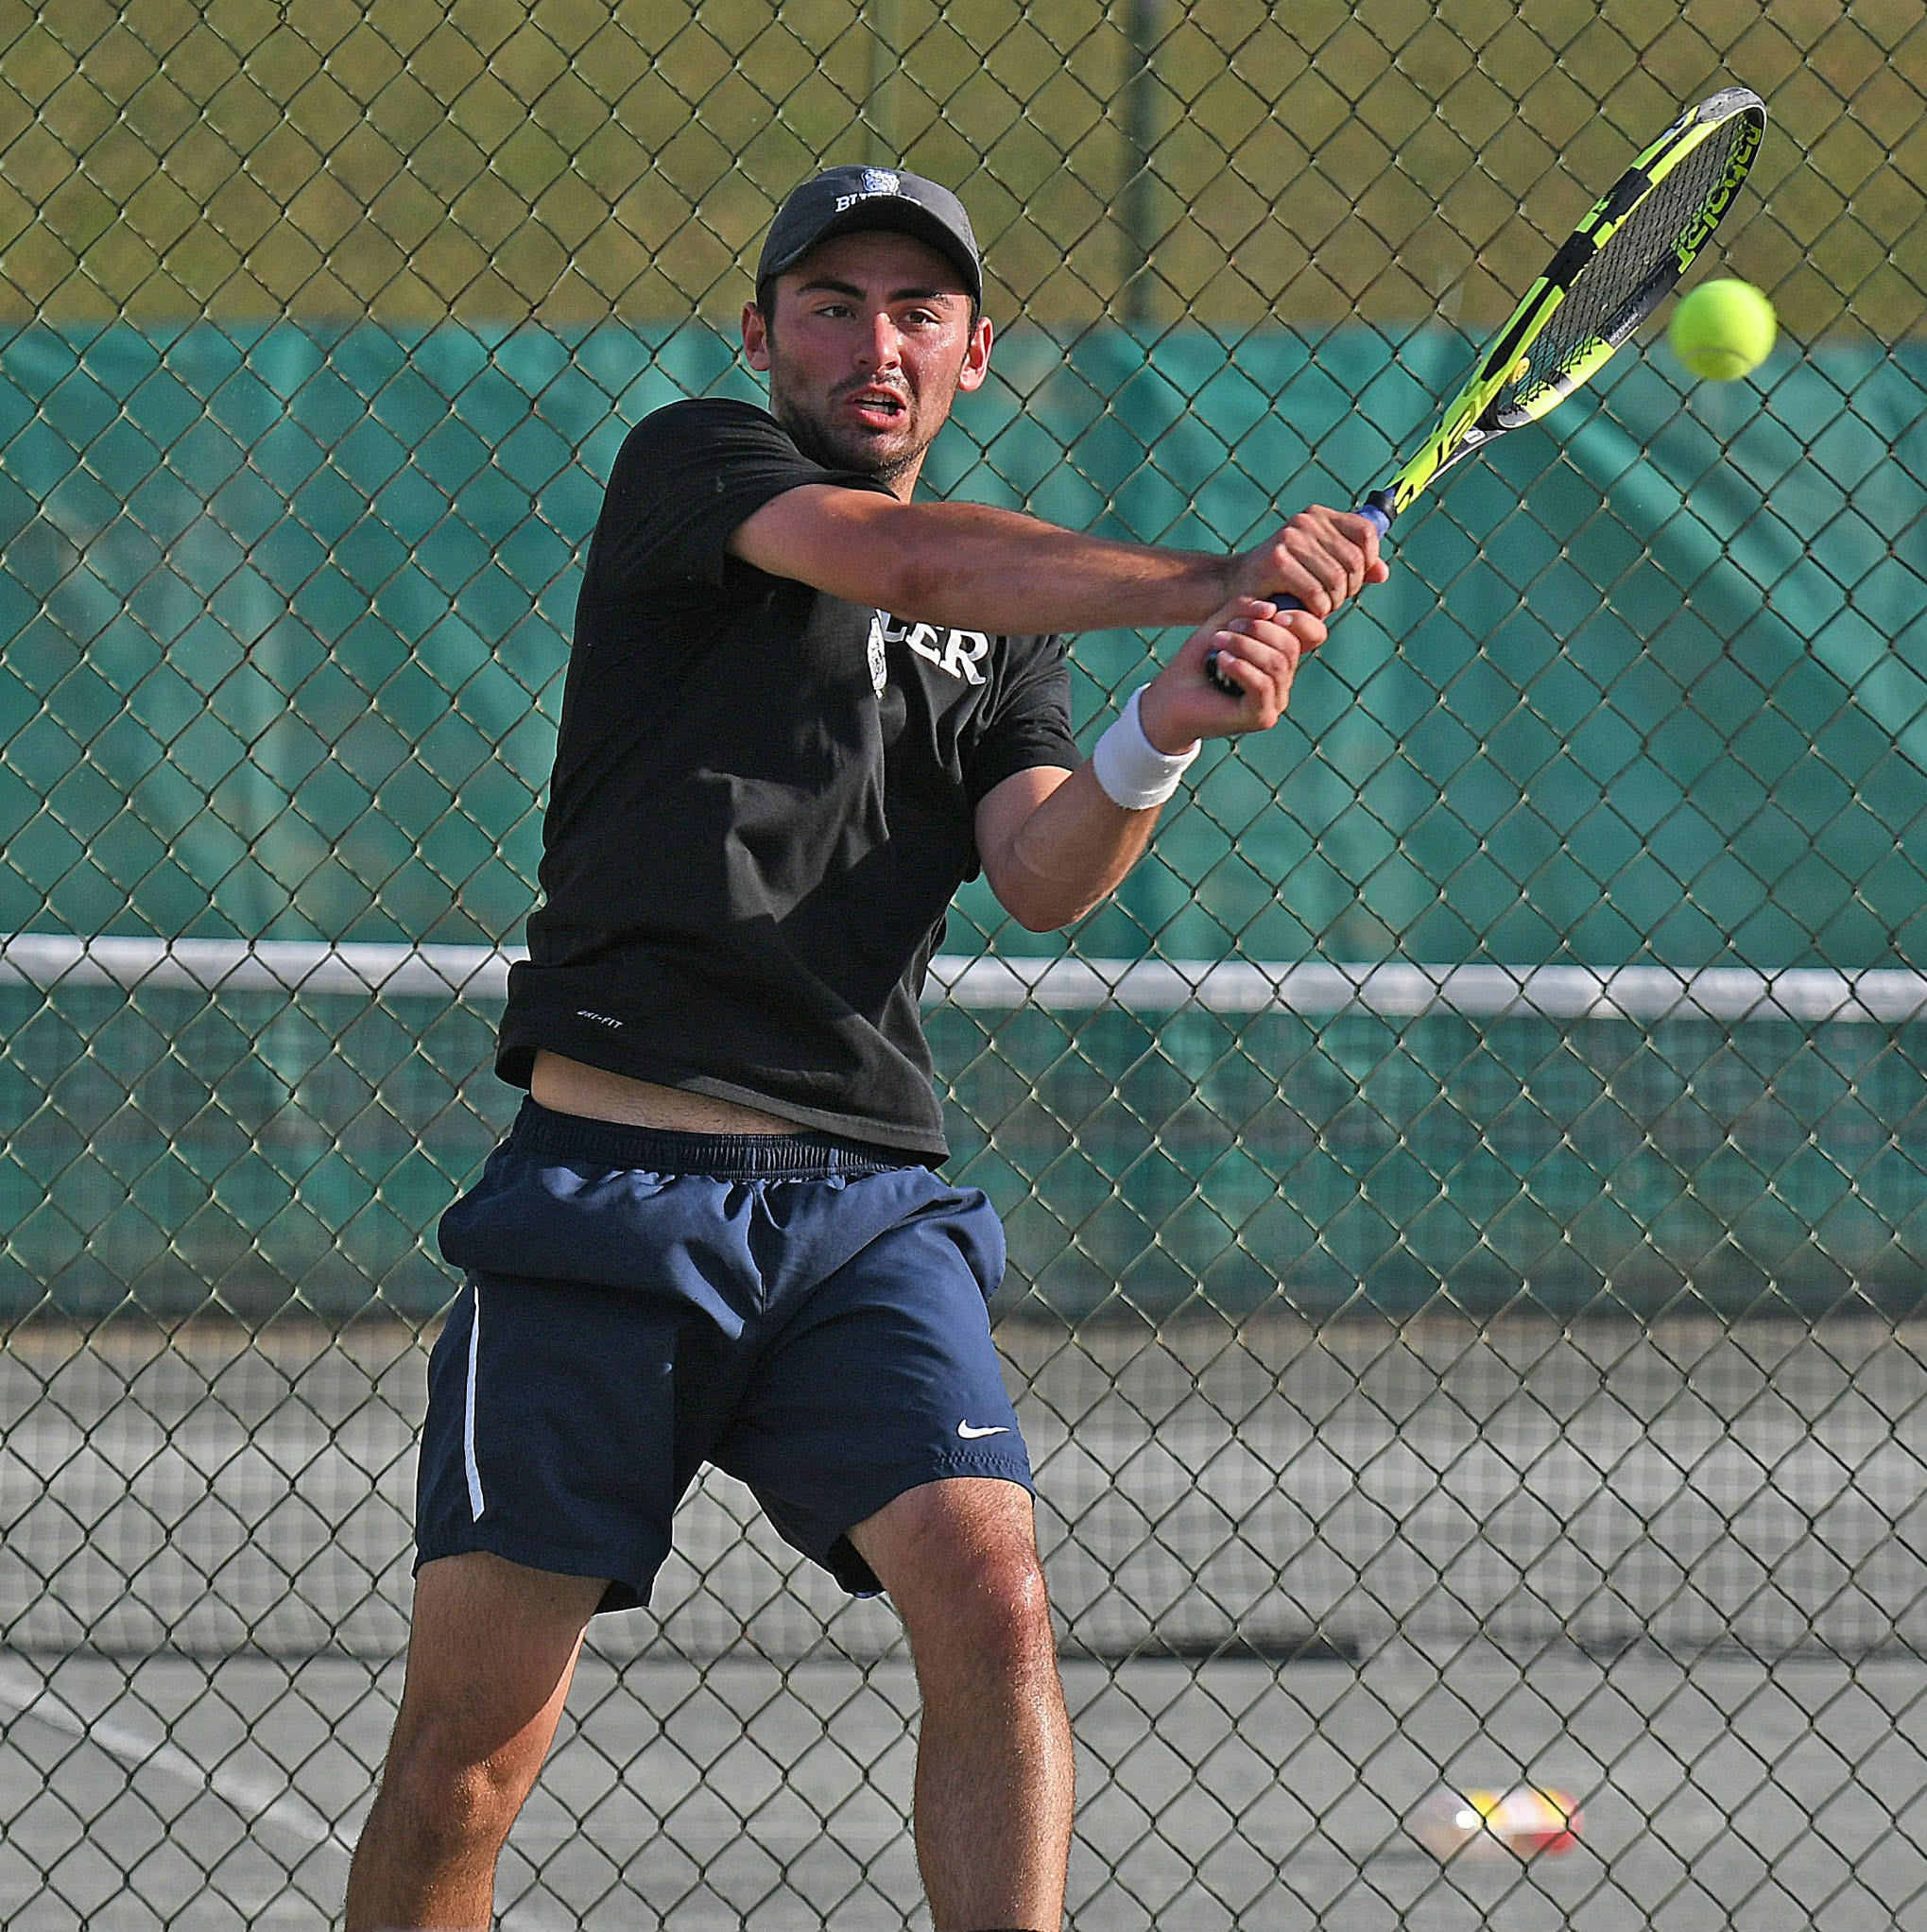 Among the elite: Dragos, Aleck take marquee titles in News Journal Tennis Tournament